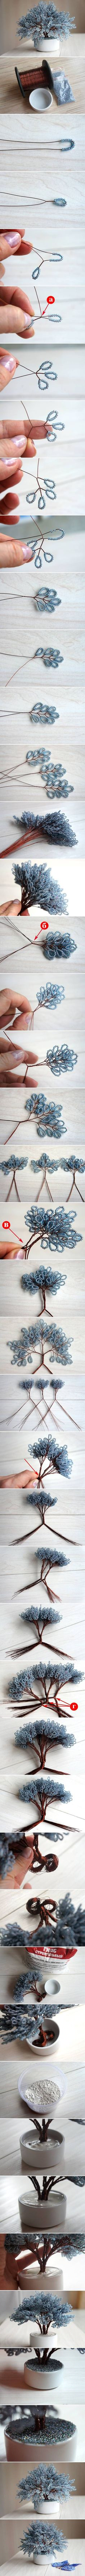 DIY Miniature Tree of Beads